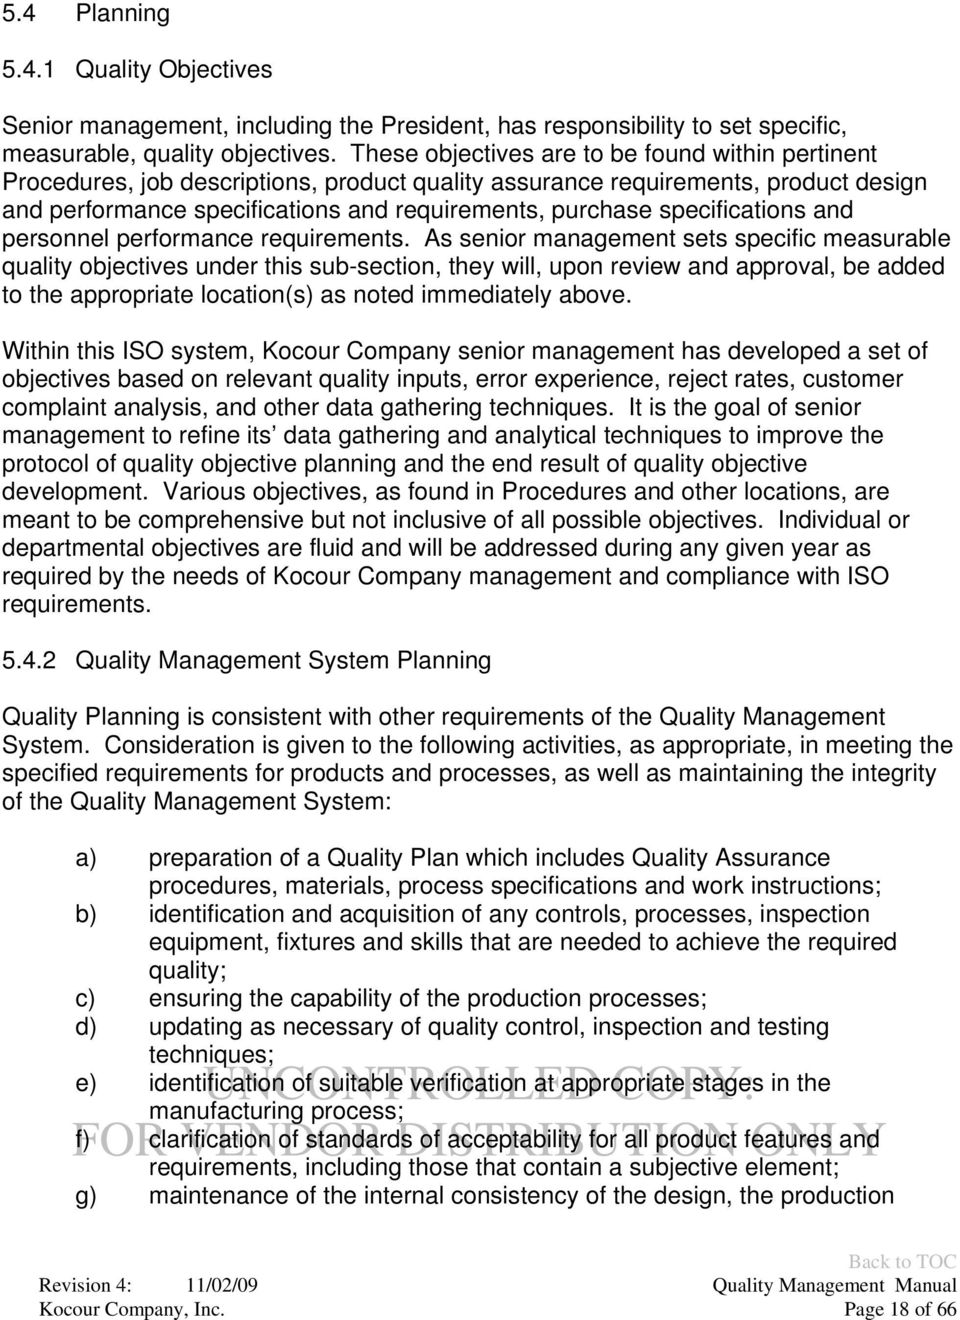 specifications and personnel performance requirements.